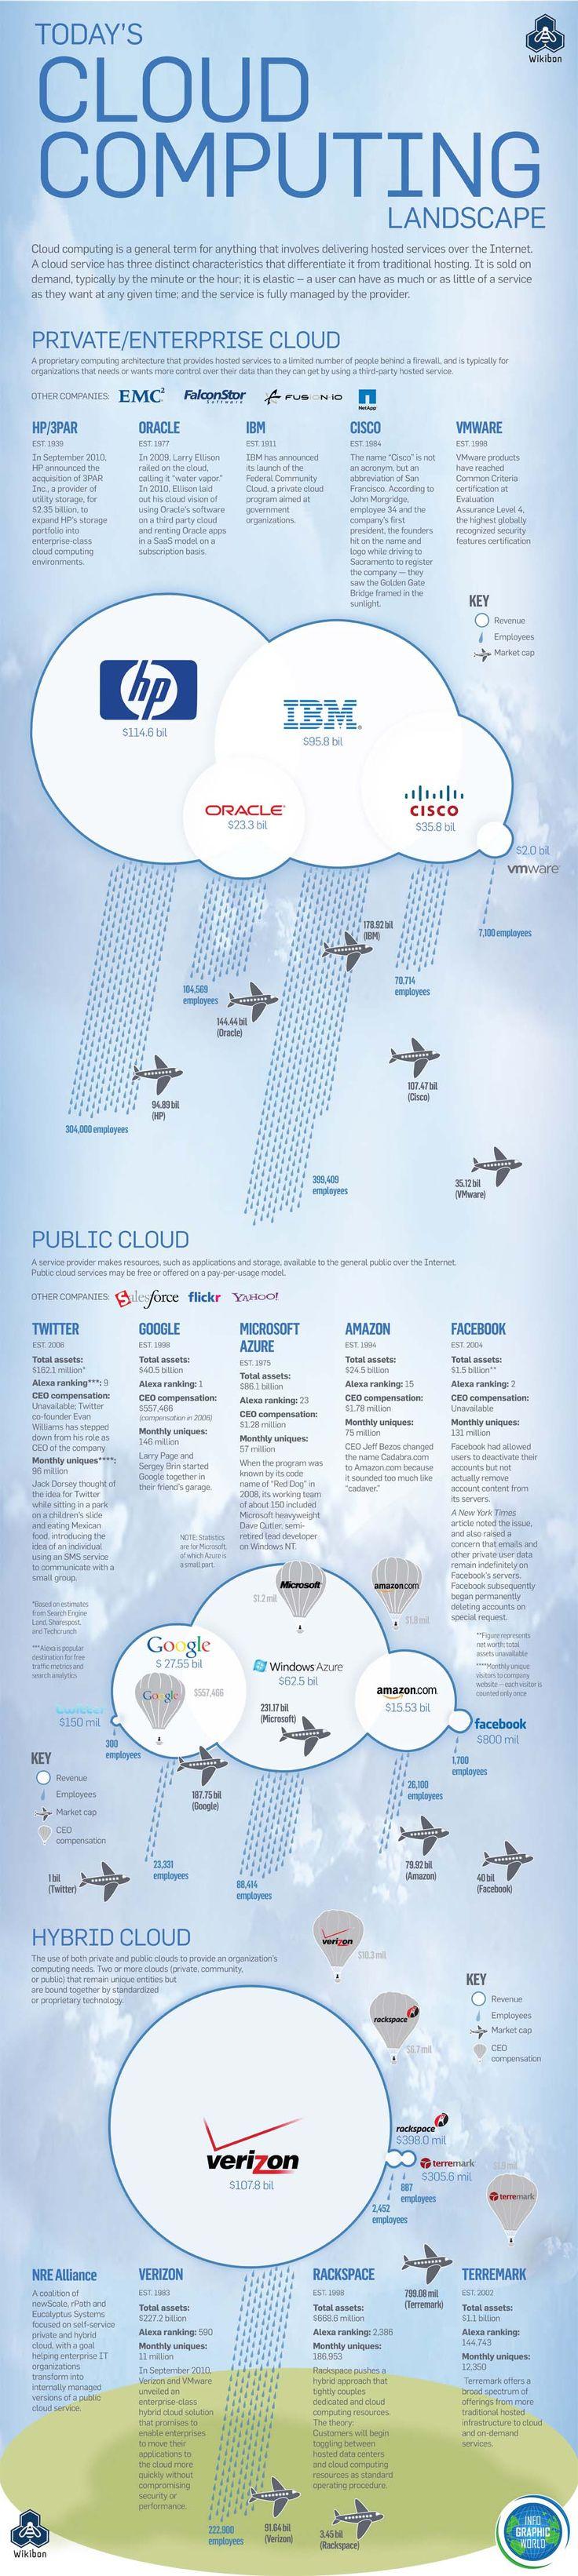 Cloud Computing Landscape - One of 15 Useful Infographics For Designers And Developers